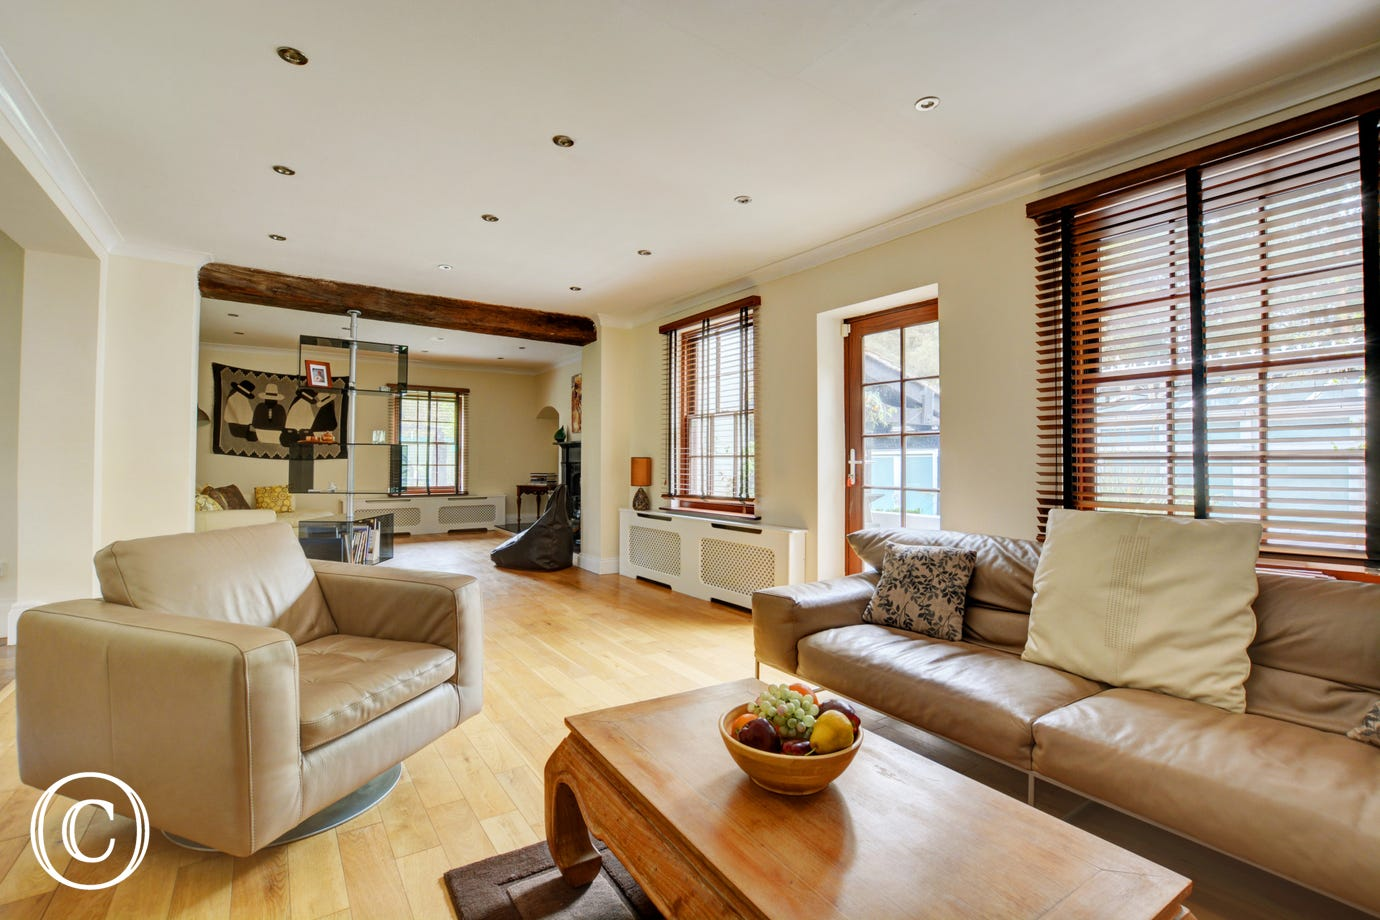 Spacious Sitting Room with comfortable seating